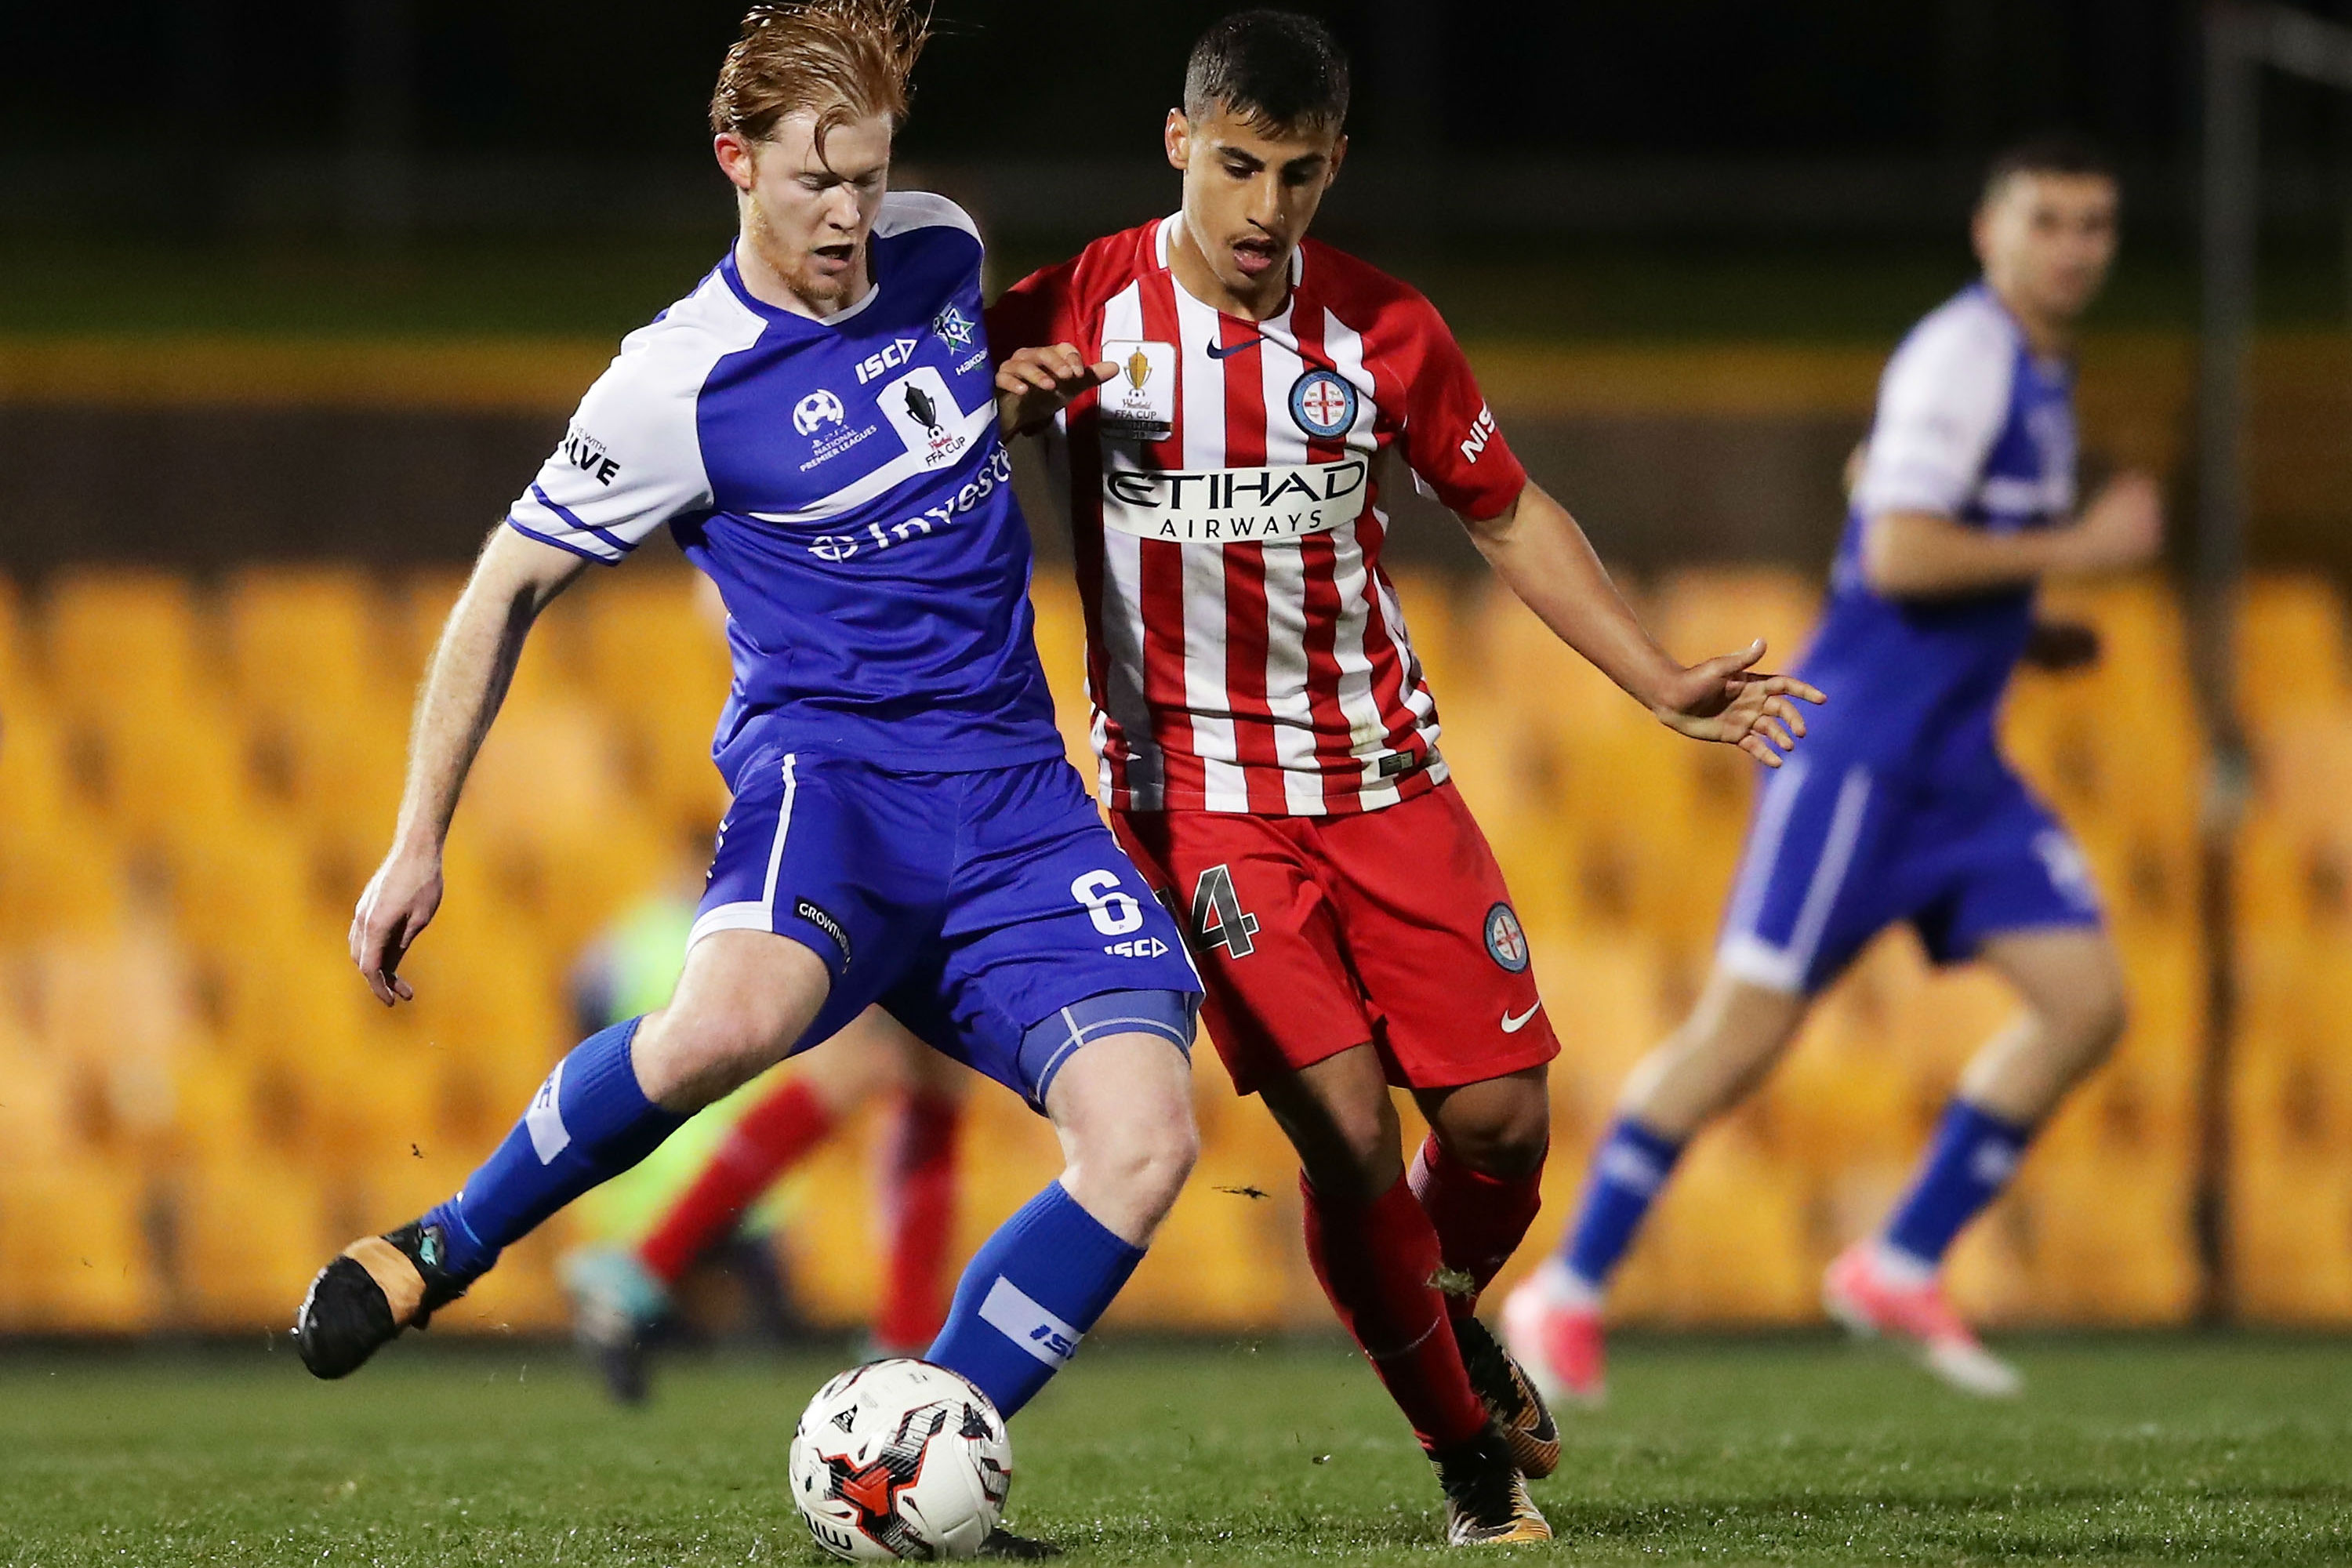 Hakoah Sydney City East